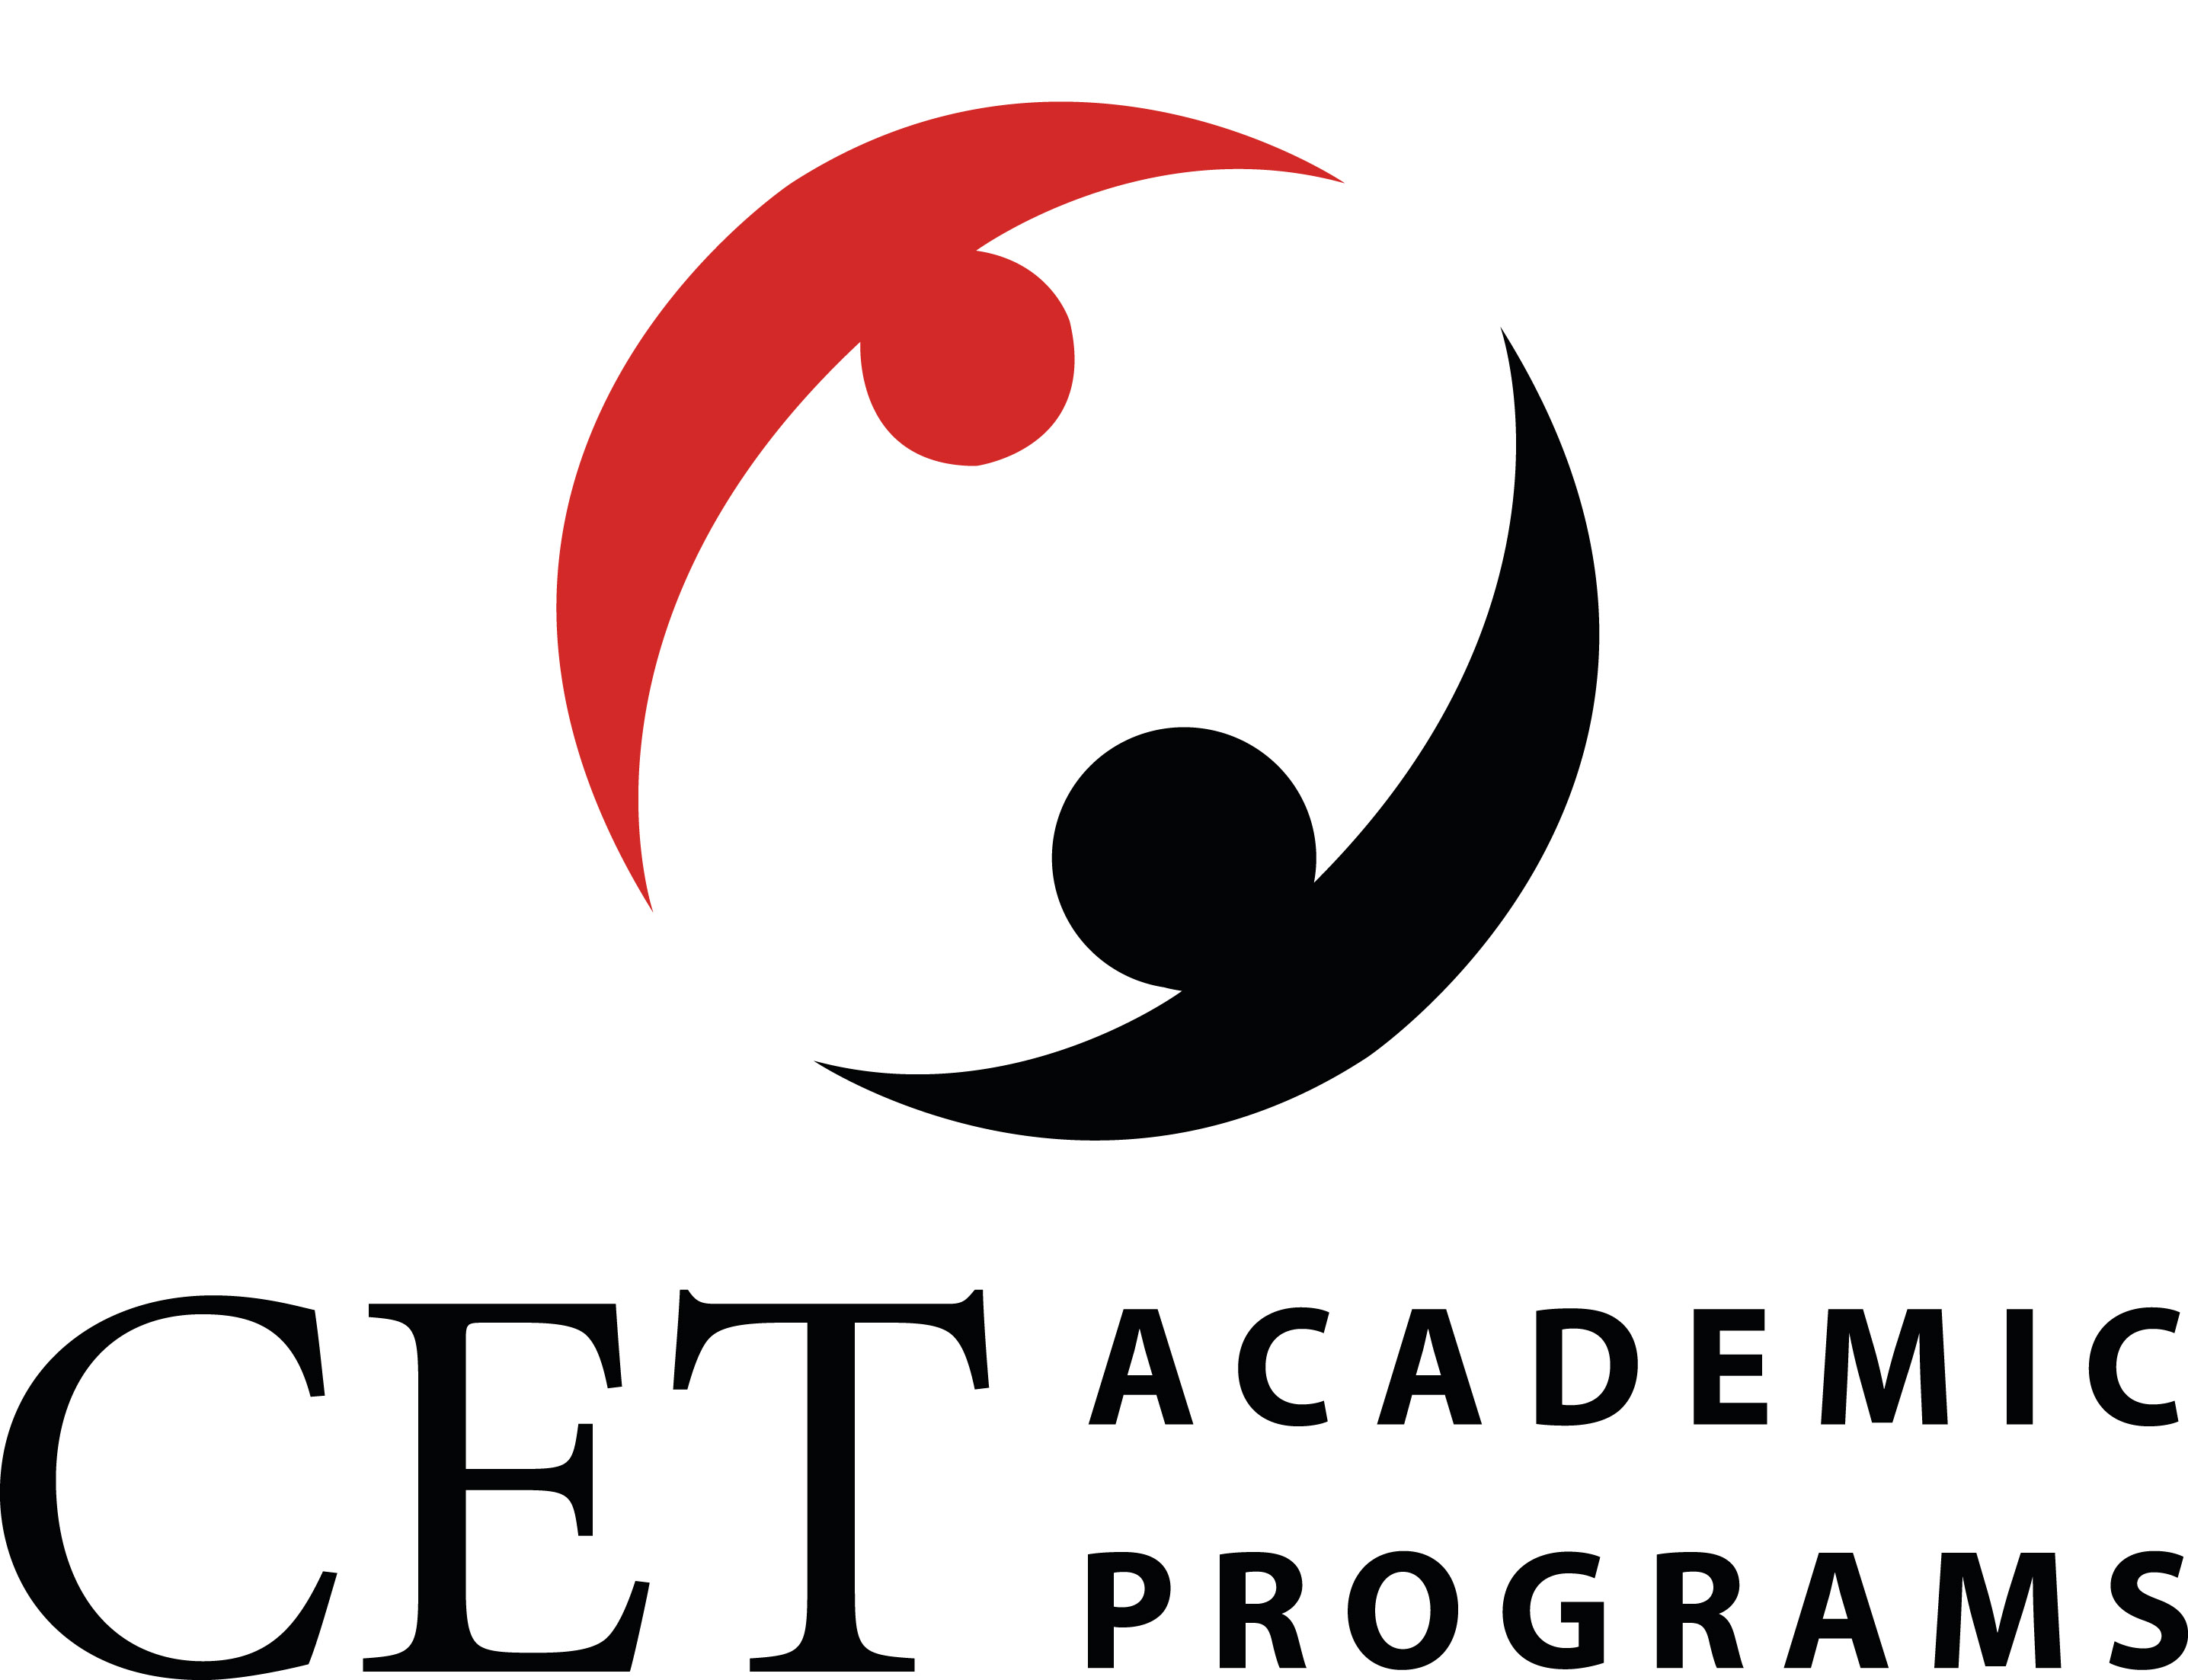 Gap Year Program CET Academic Programs: Gap Year